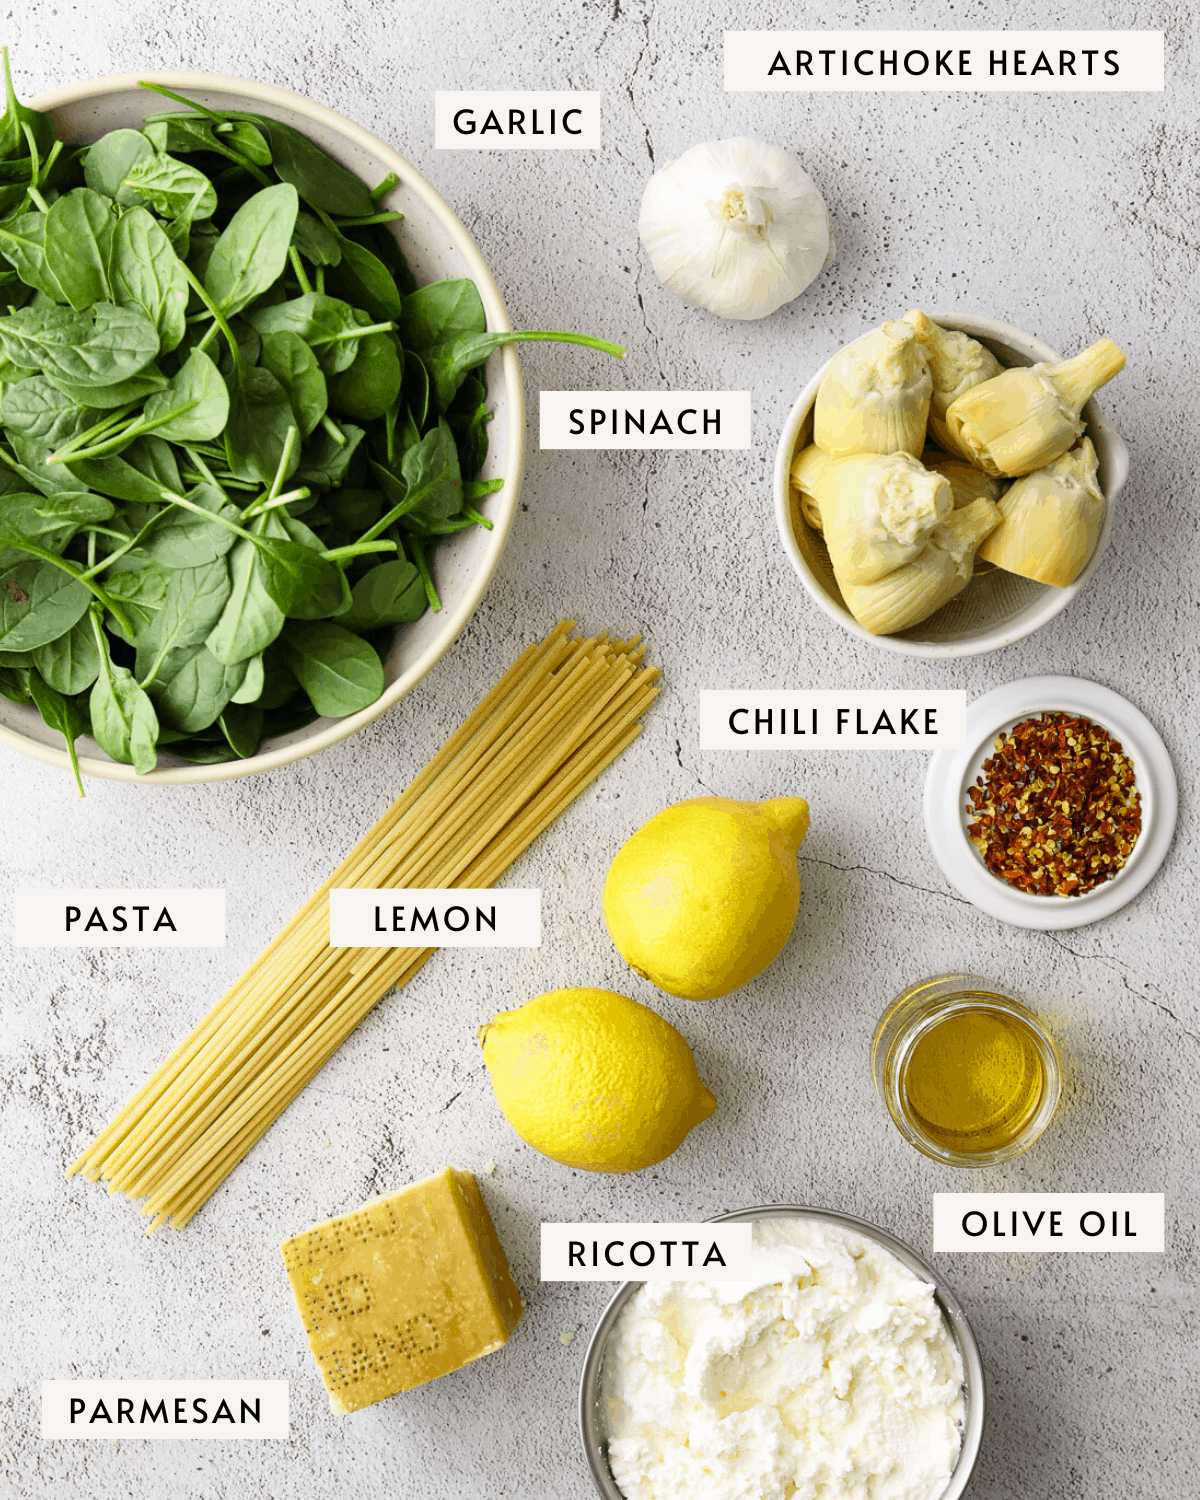 recipe ingredients individually portioned out; artichoke hearts, spinach, lemon, ricotta cheese, dried pasta etc.